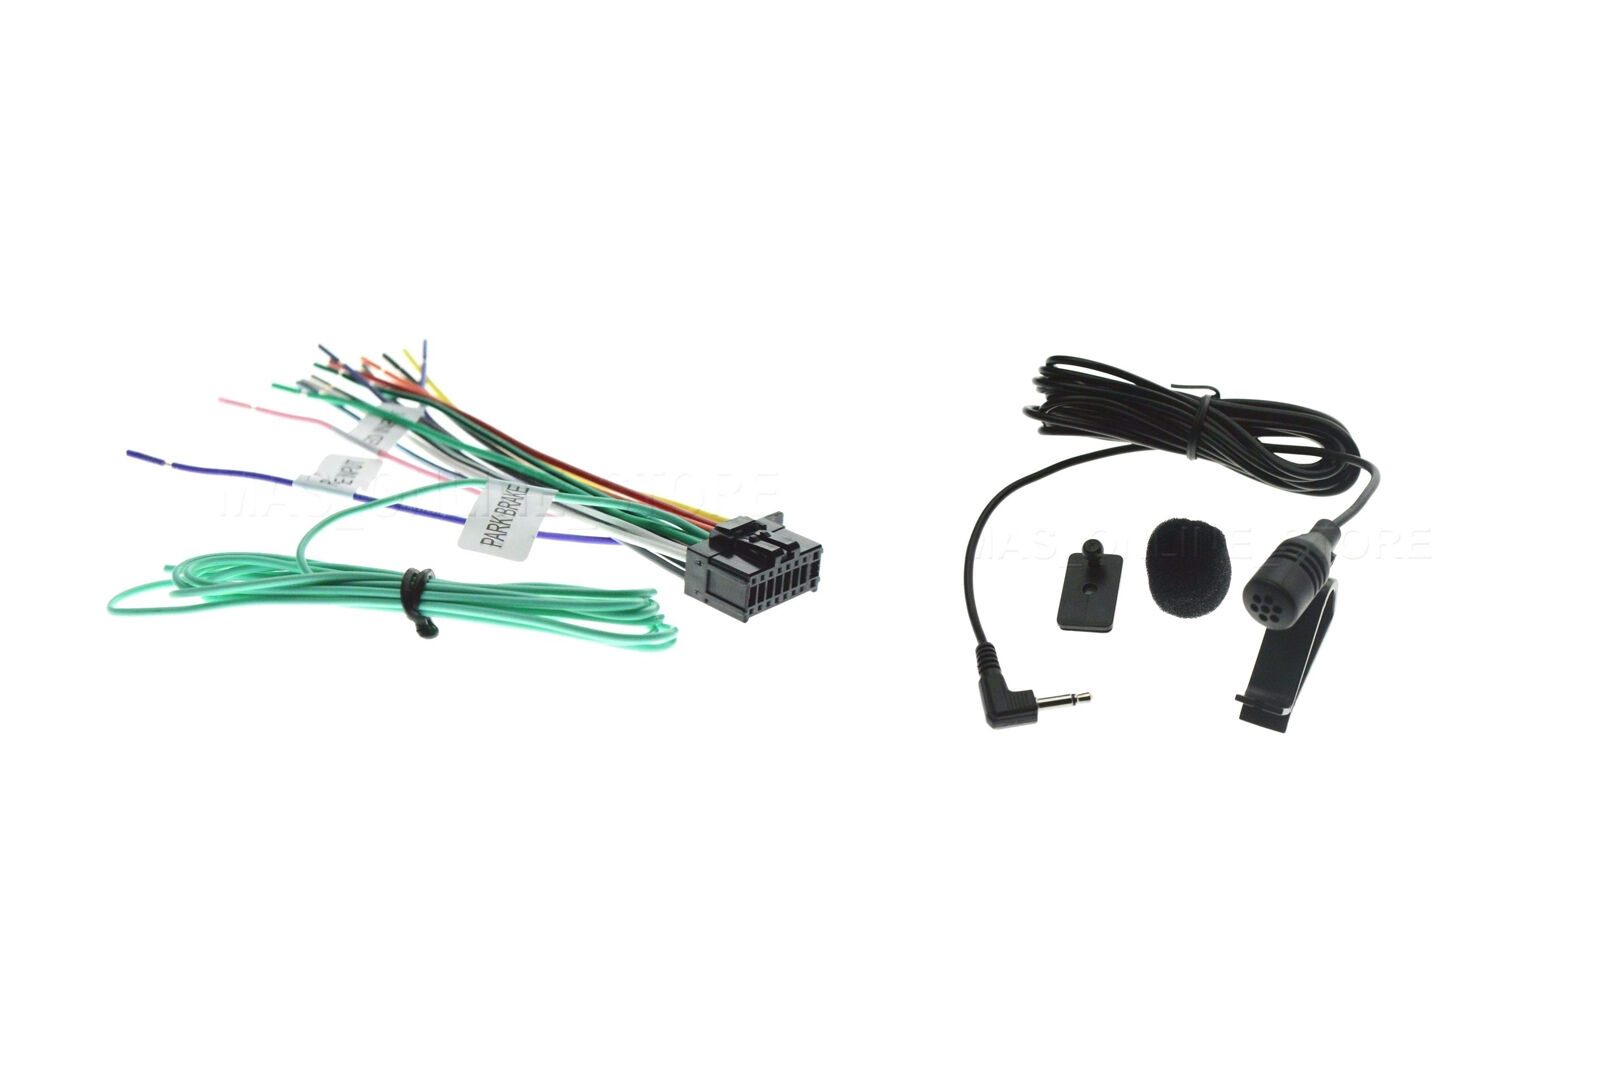 s l1600 16pin wire harness & microphone for pioneer avic 8200nex Wire Harness Assembly at soozxer.org